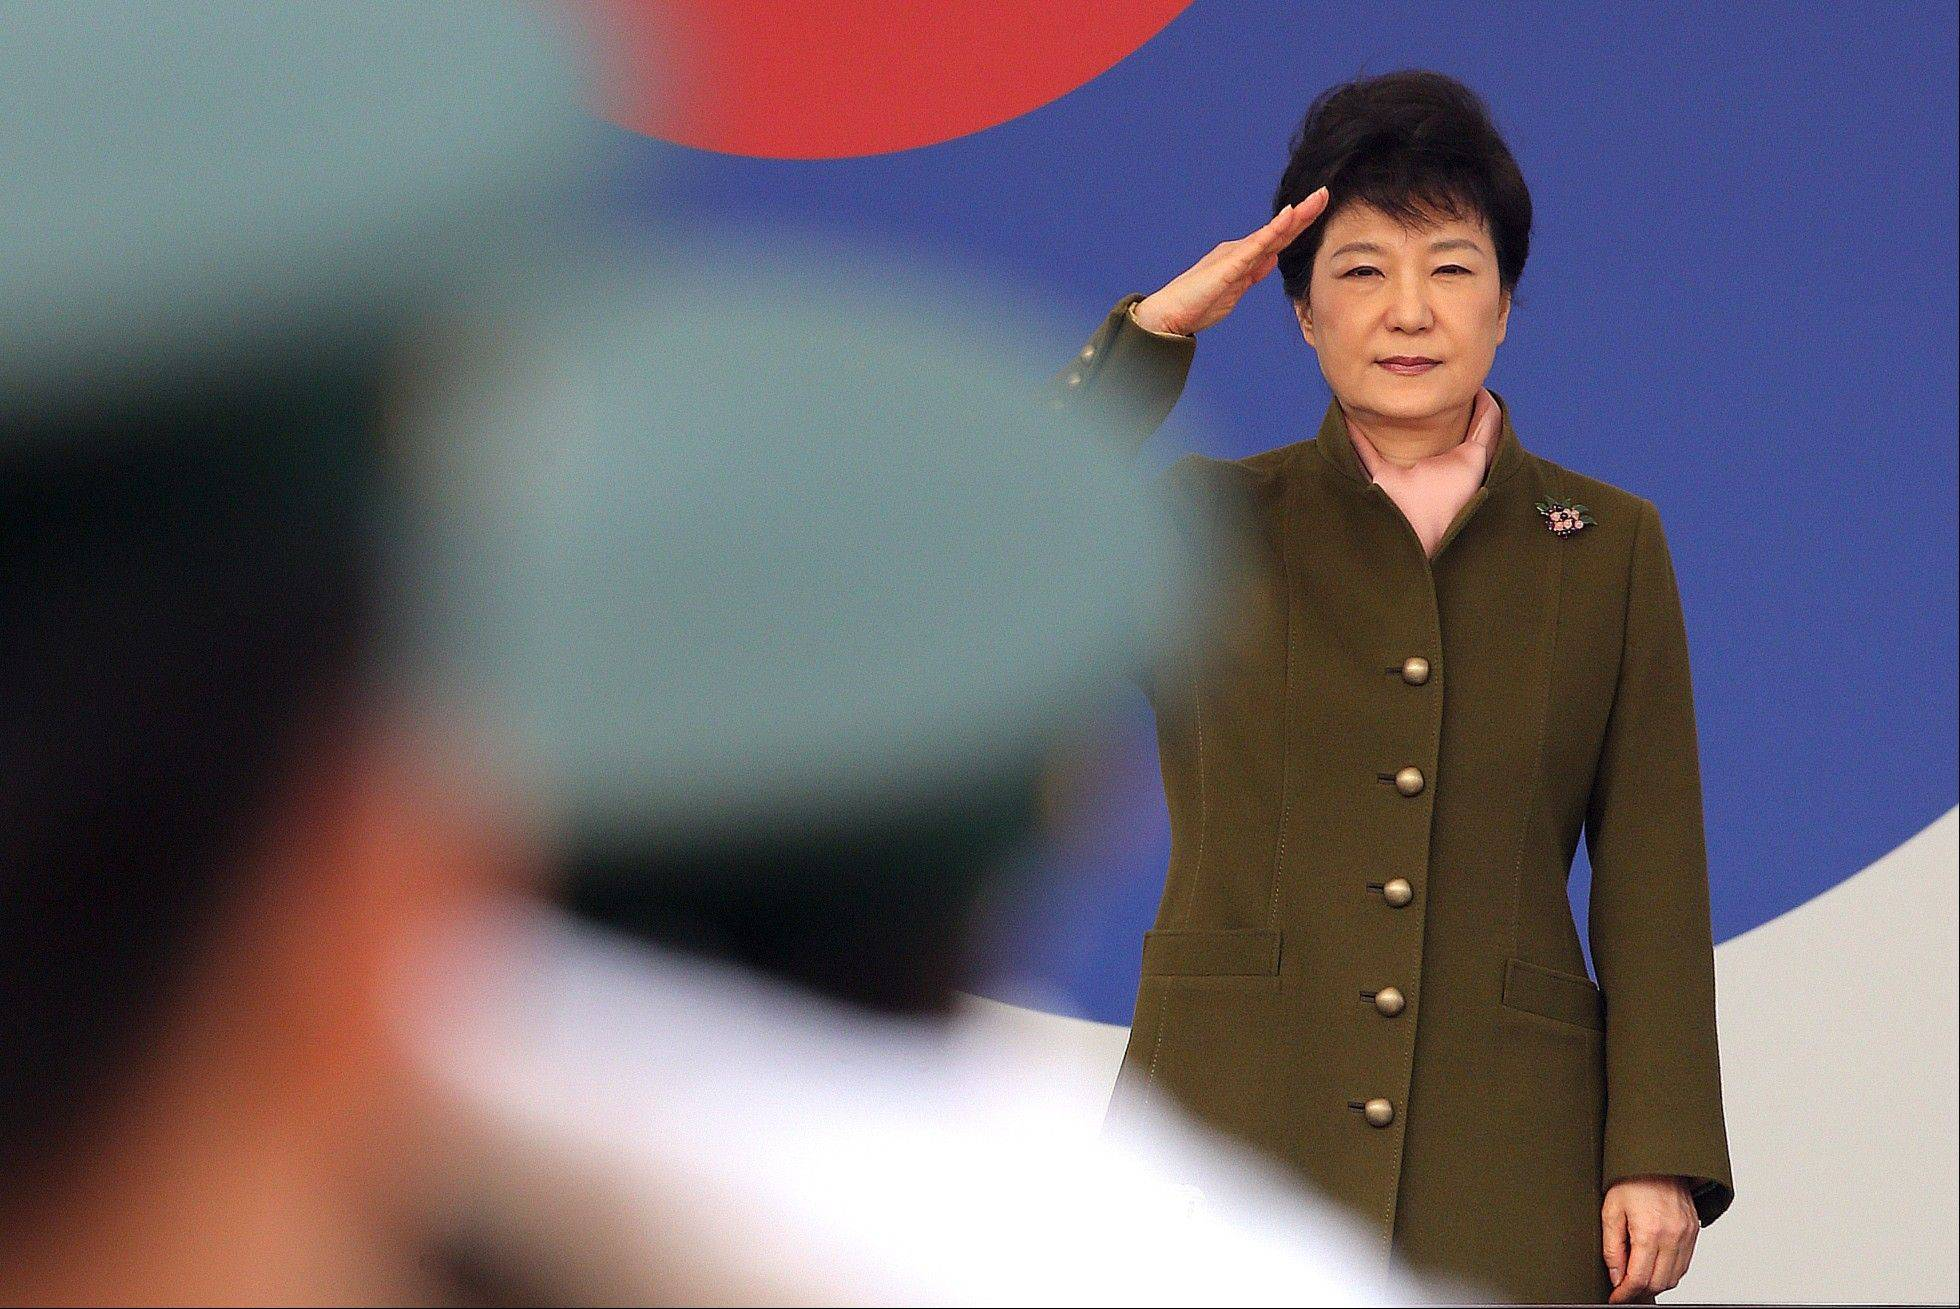 South Korean President Park Geun-hye salutes during a joint commission ceremony of 5,780 new officers of Army, Navy, Air Force and Marines. The body that controls North Korea�s military is dismissing the South Korea�s new president with a sexist comment about the �venomous swish� of her skirt.